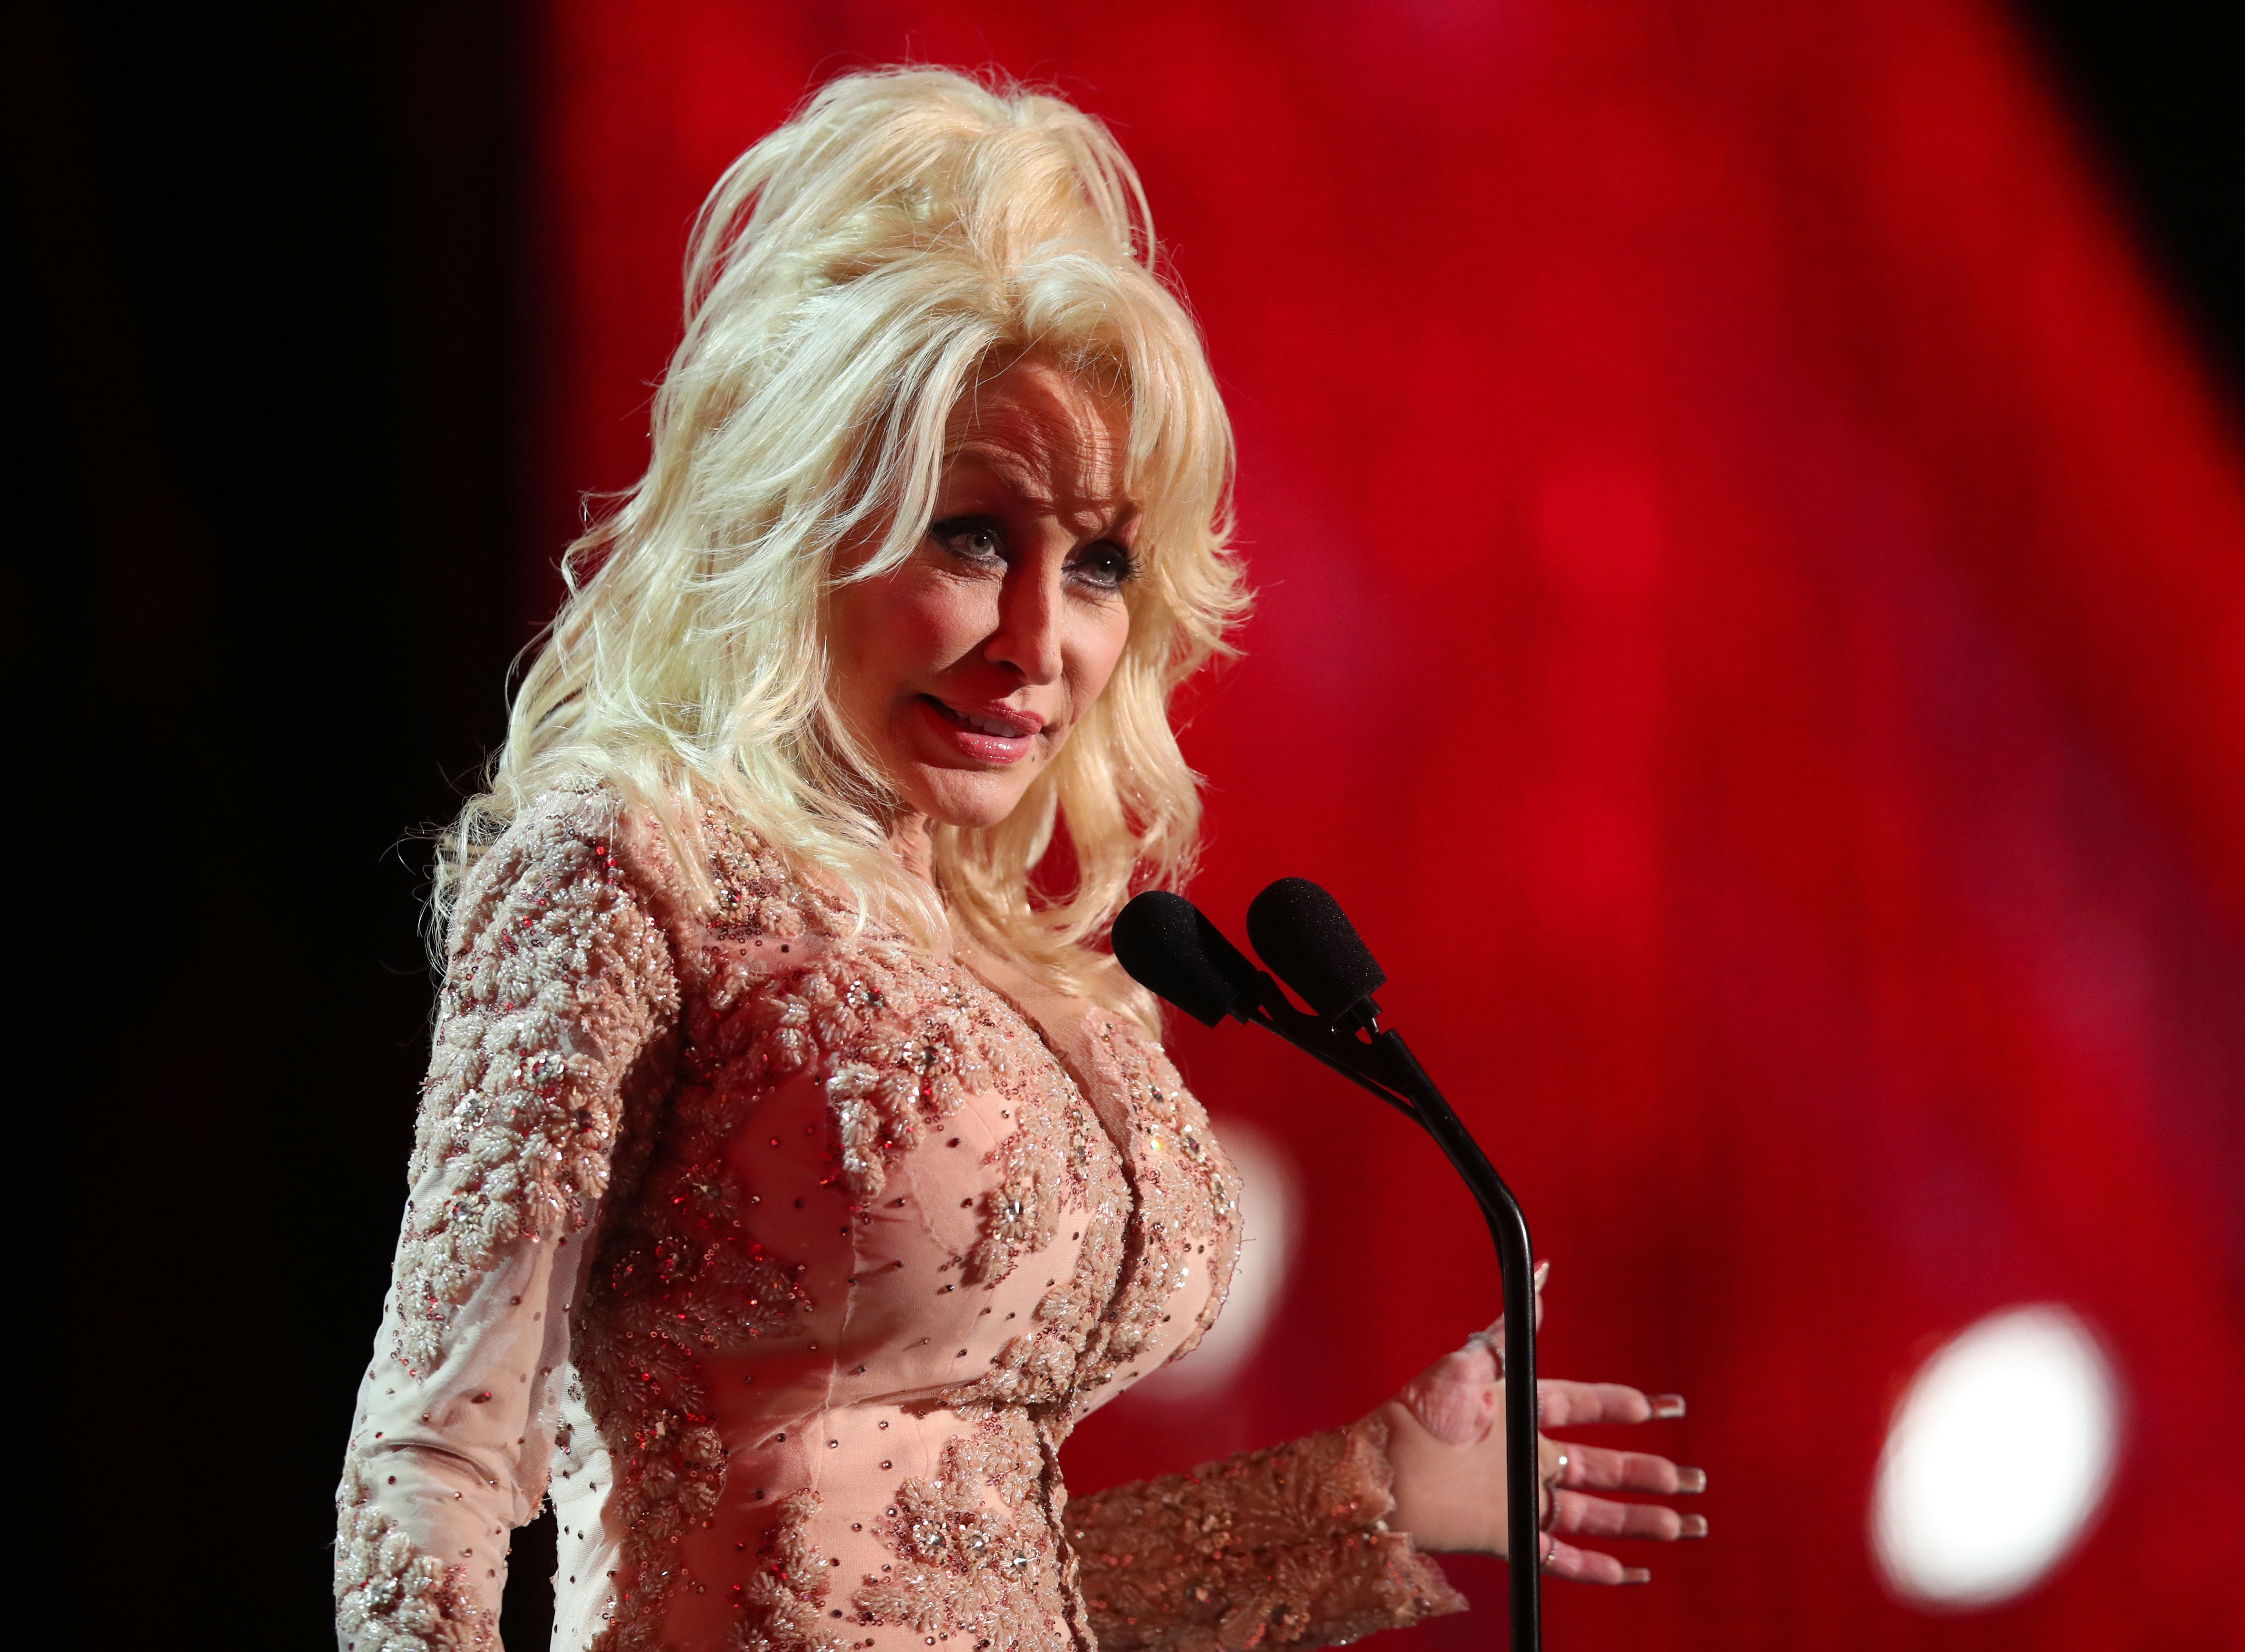 Dolly Parton Reveals She Once Considered Suicide, But Was Saved By Her